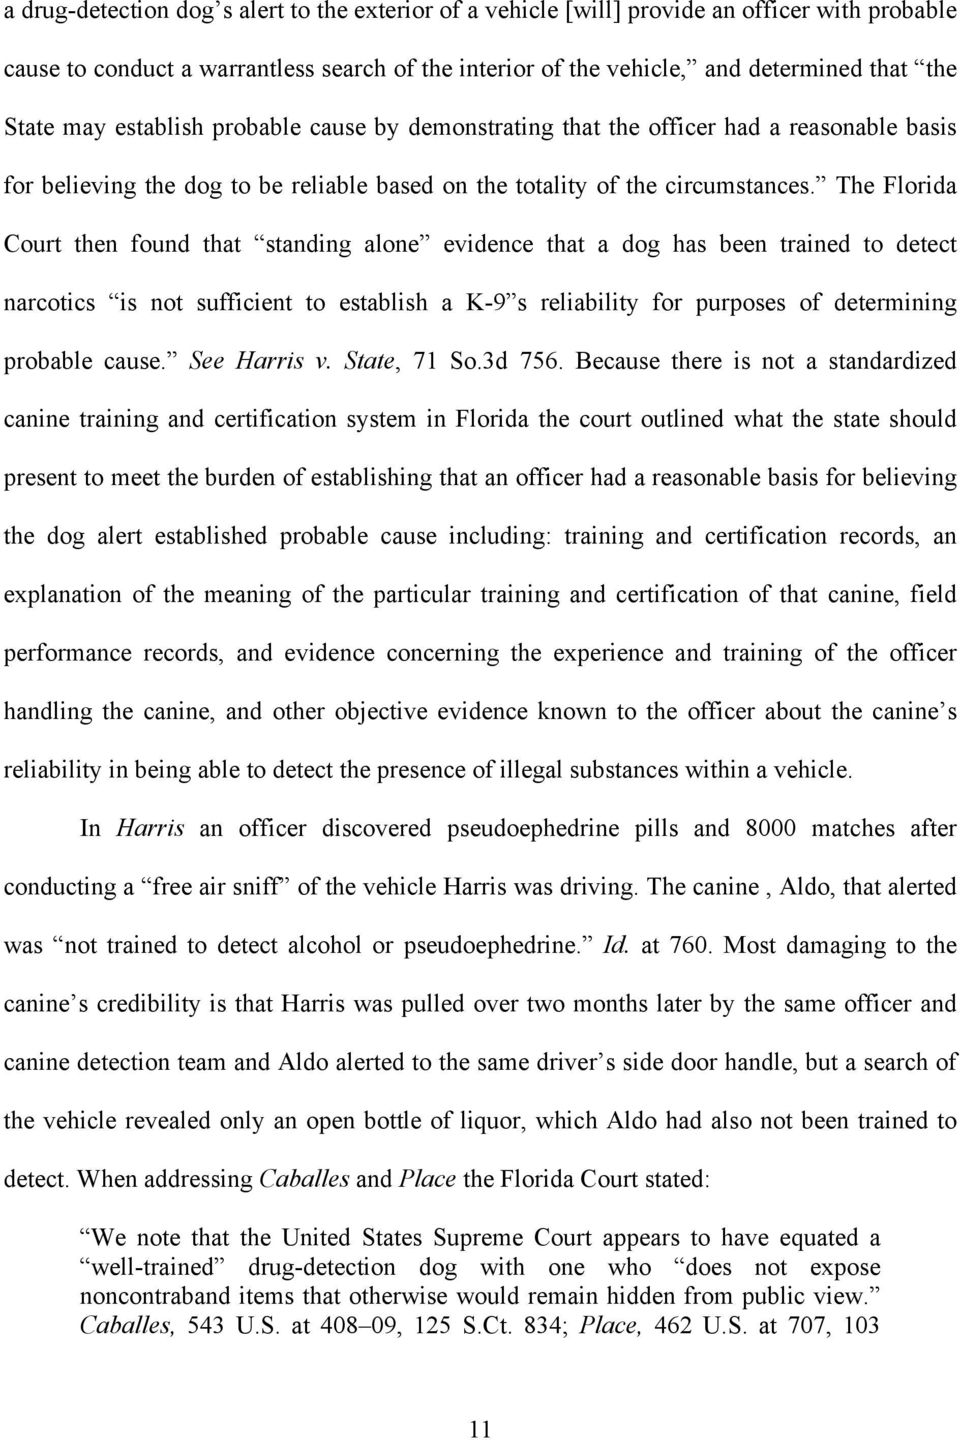 The Florida Court then found that standing alone evidence that a dog has been trained to detect narcotics is not sufficient to establish a K-9 s reliability for purposes of determining probable cause.